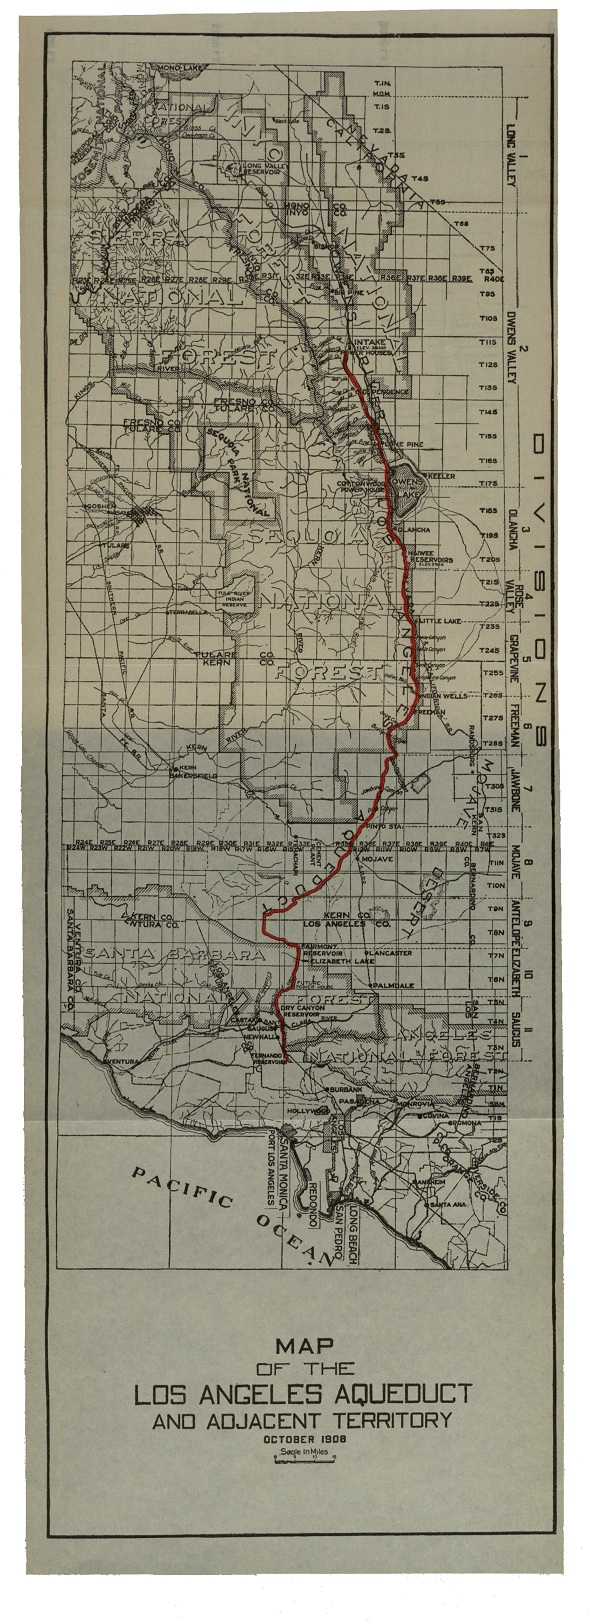 Proposed map of the Aqueduct pipeline, from the Owens Valley to Los Angeles.